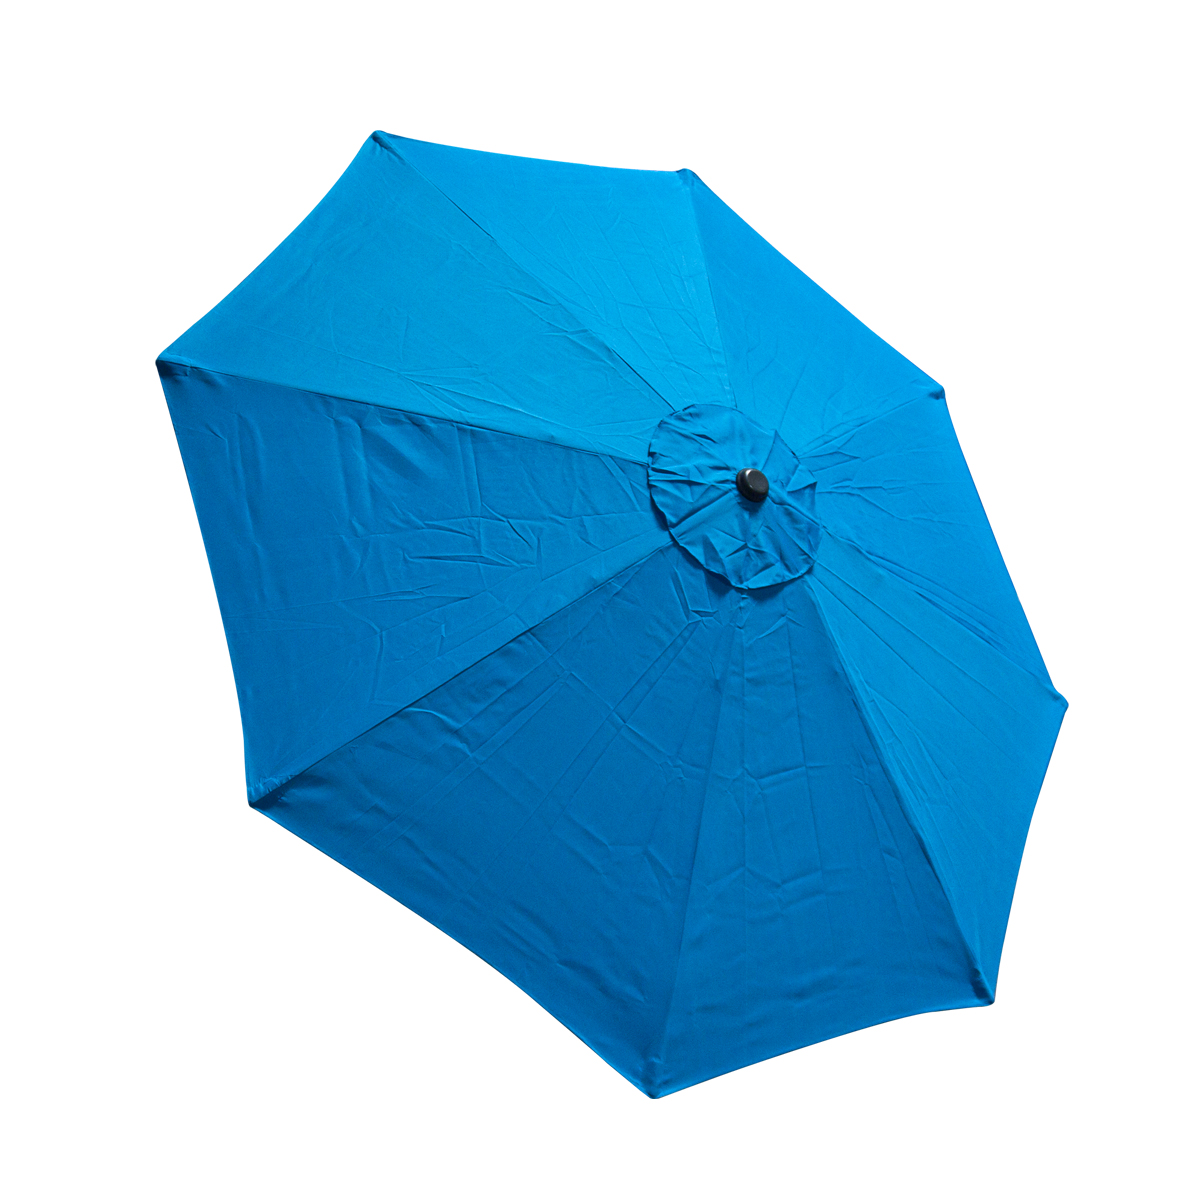 Patio Umbrella Replacement Canopy: 9 FT 8 Ribs Replacement Umbrella Cover Canopy Blue Top